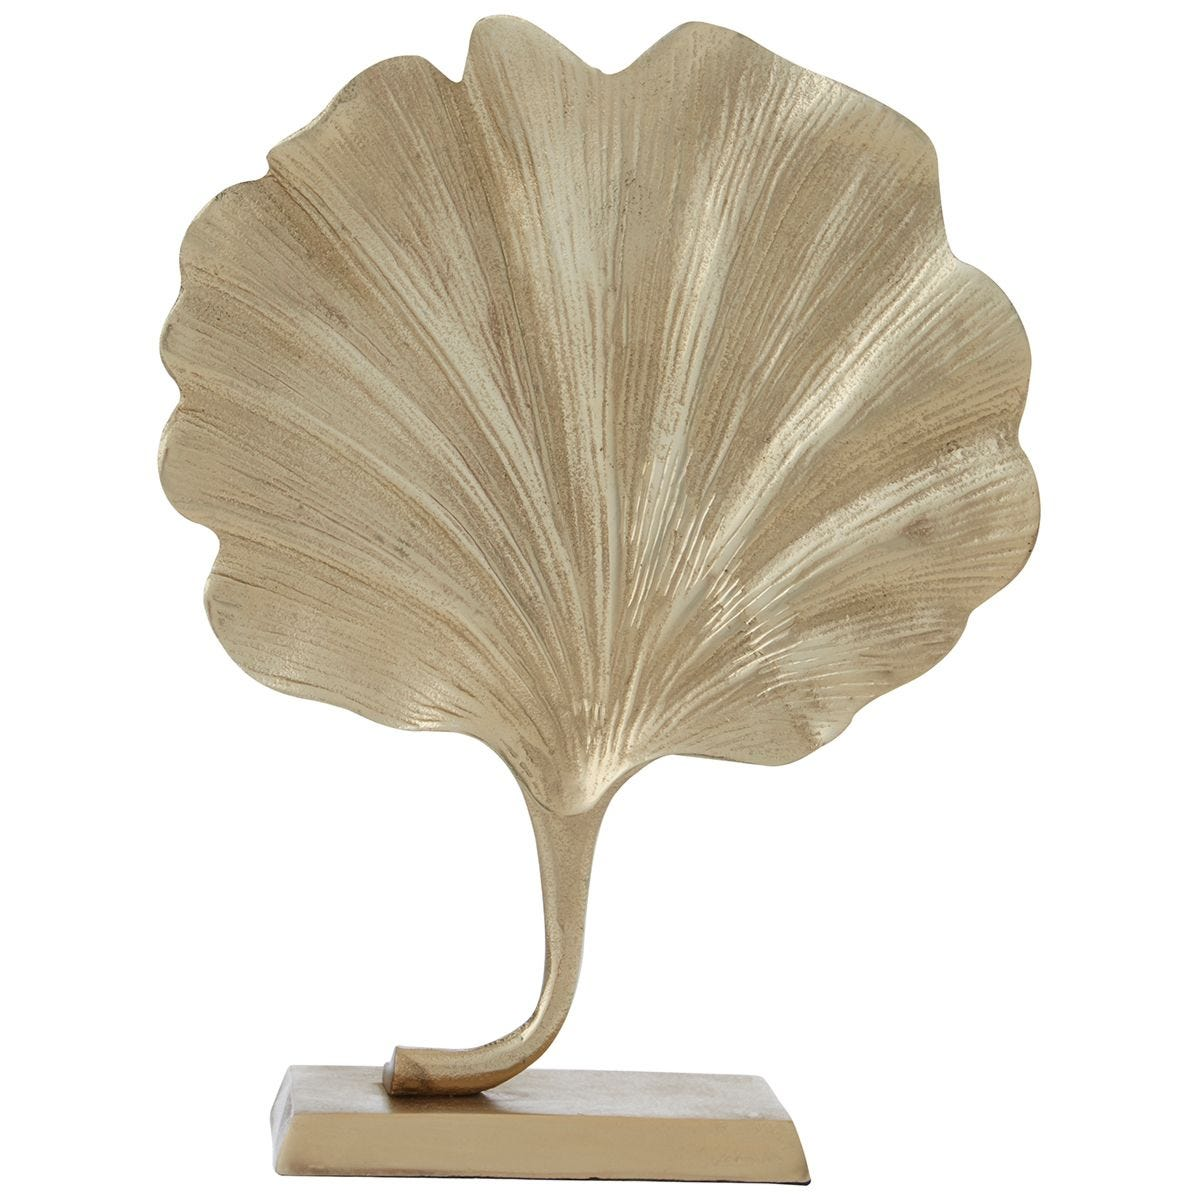 Premier Housewares Prato Leaf Sculpture - Gold finish Aluminium